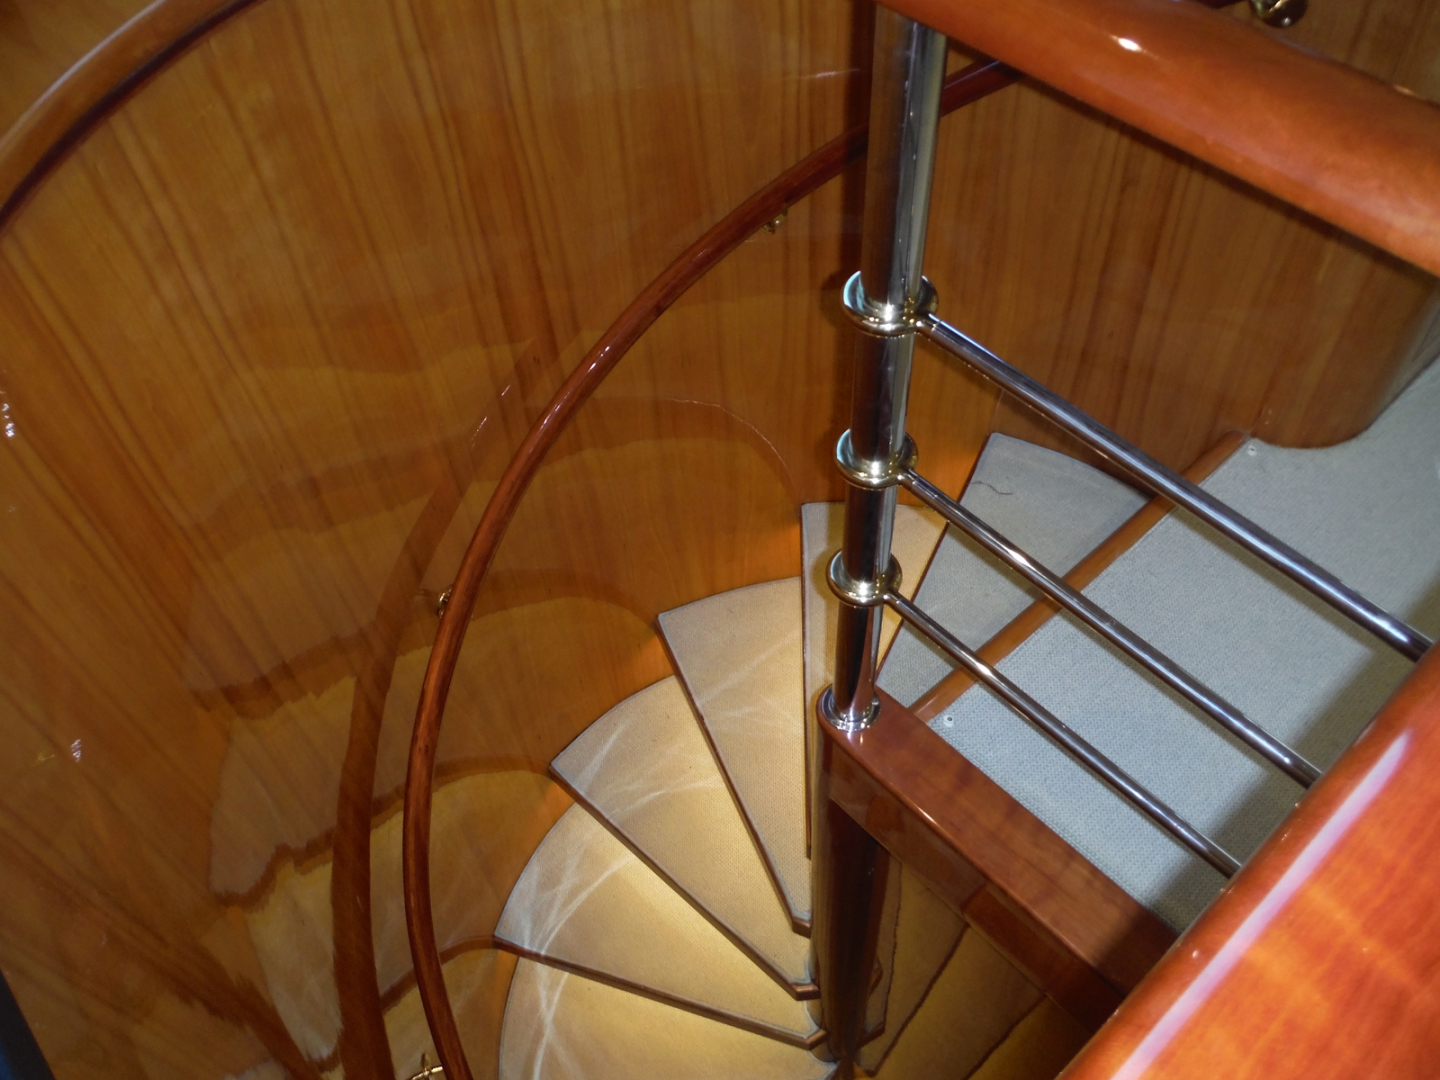 Hargrave-Flybridge Motor Yacht 2001-GRACE Fort Lauderdale-Florida-United States-Salon Steps to Below-1091923 | Thumbnail